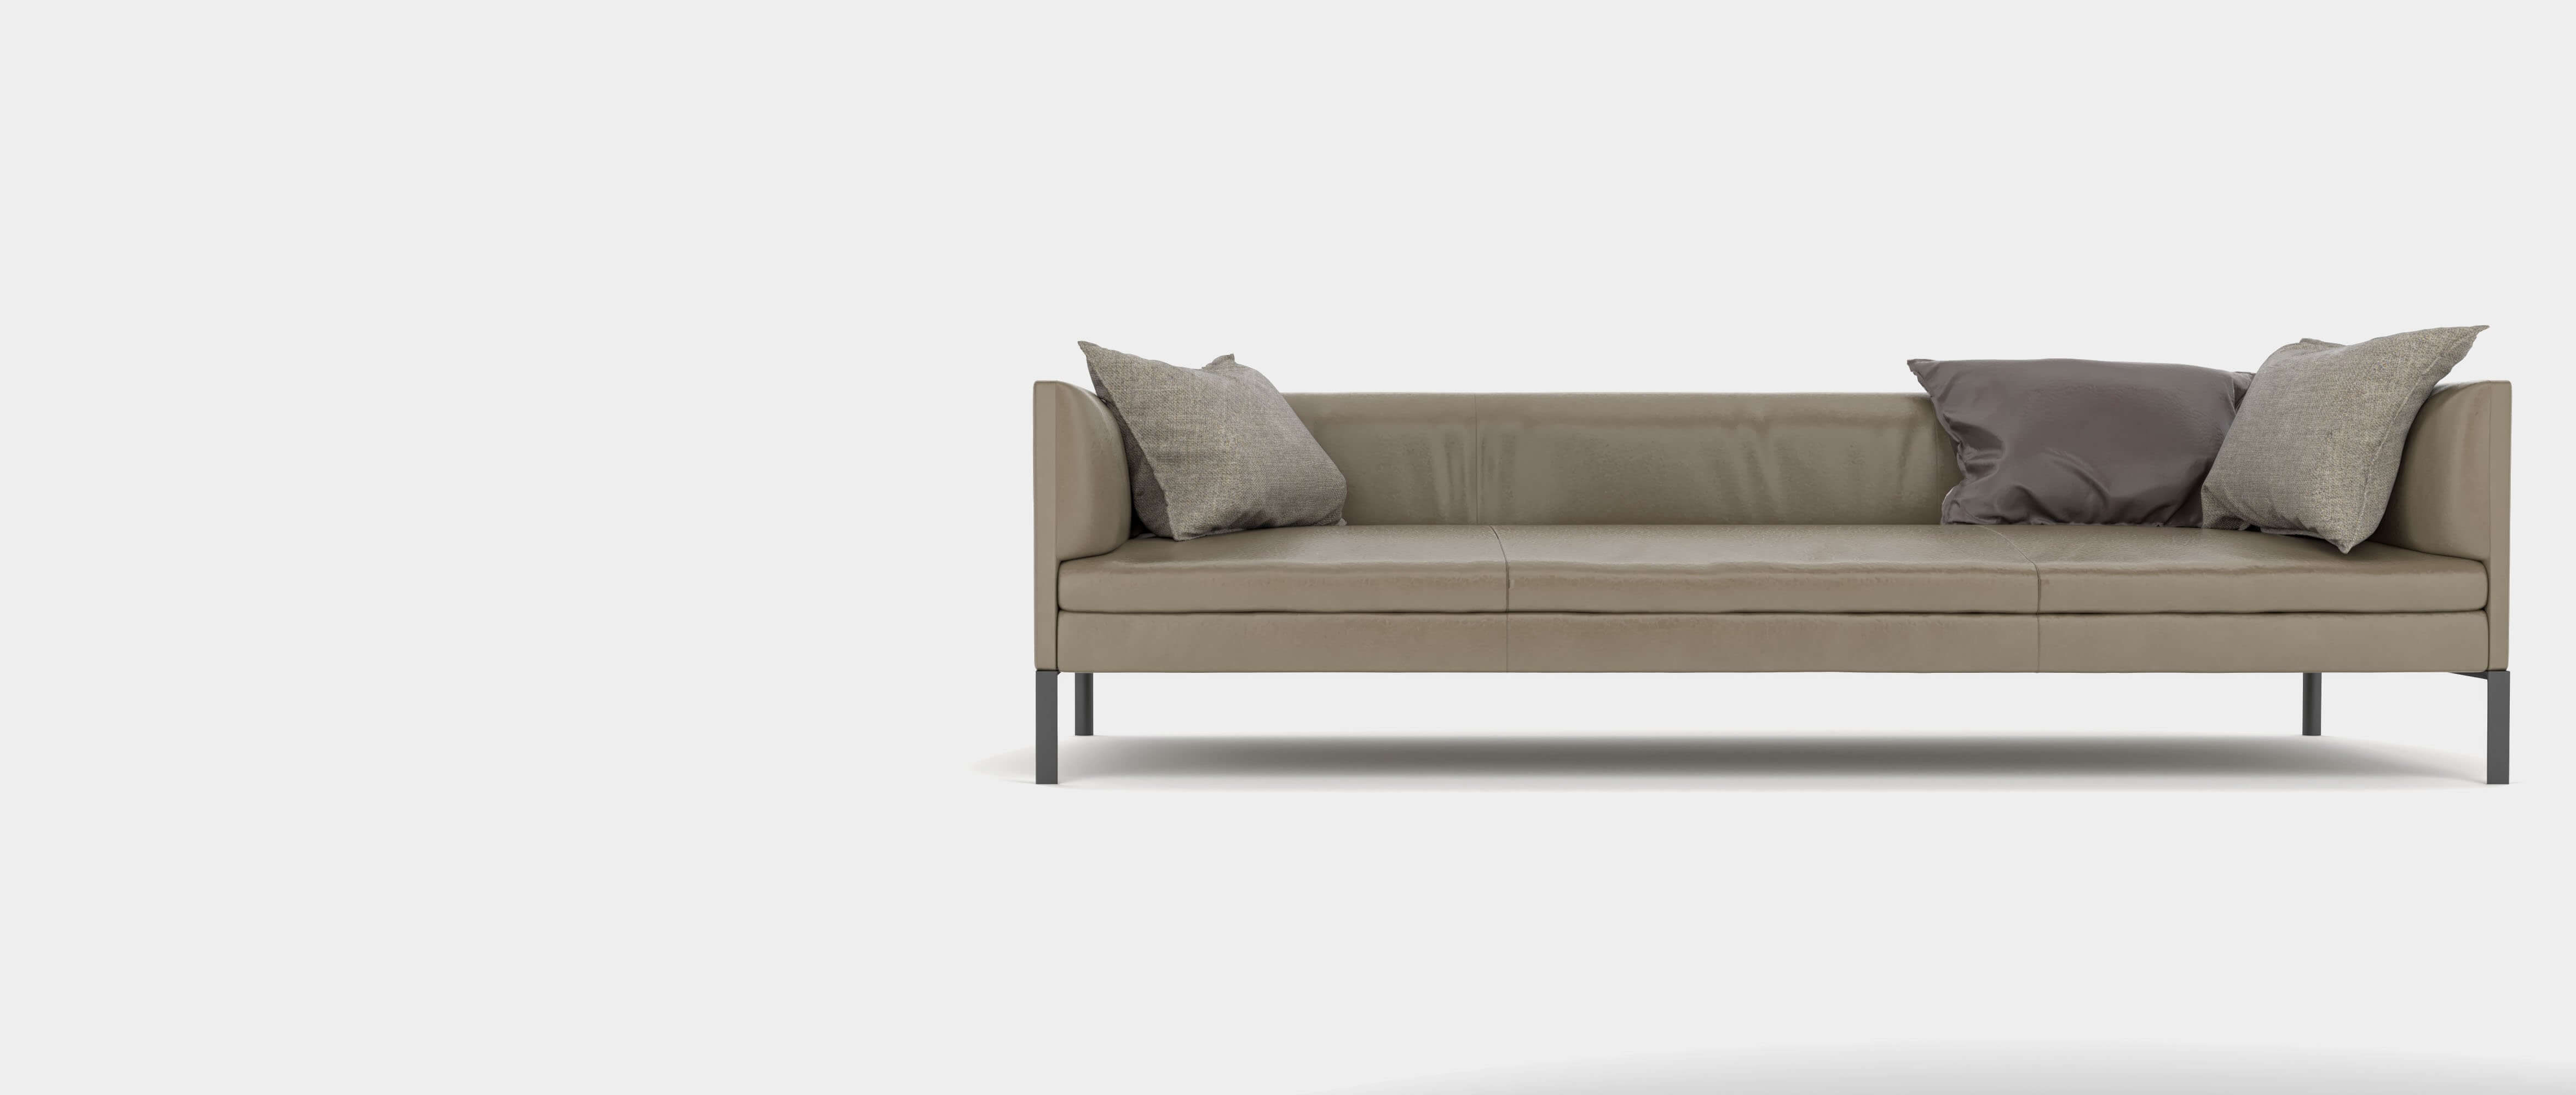 Leather couch with cushions Teaser